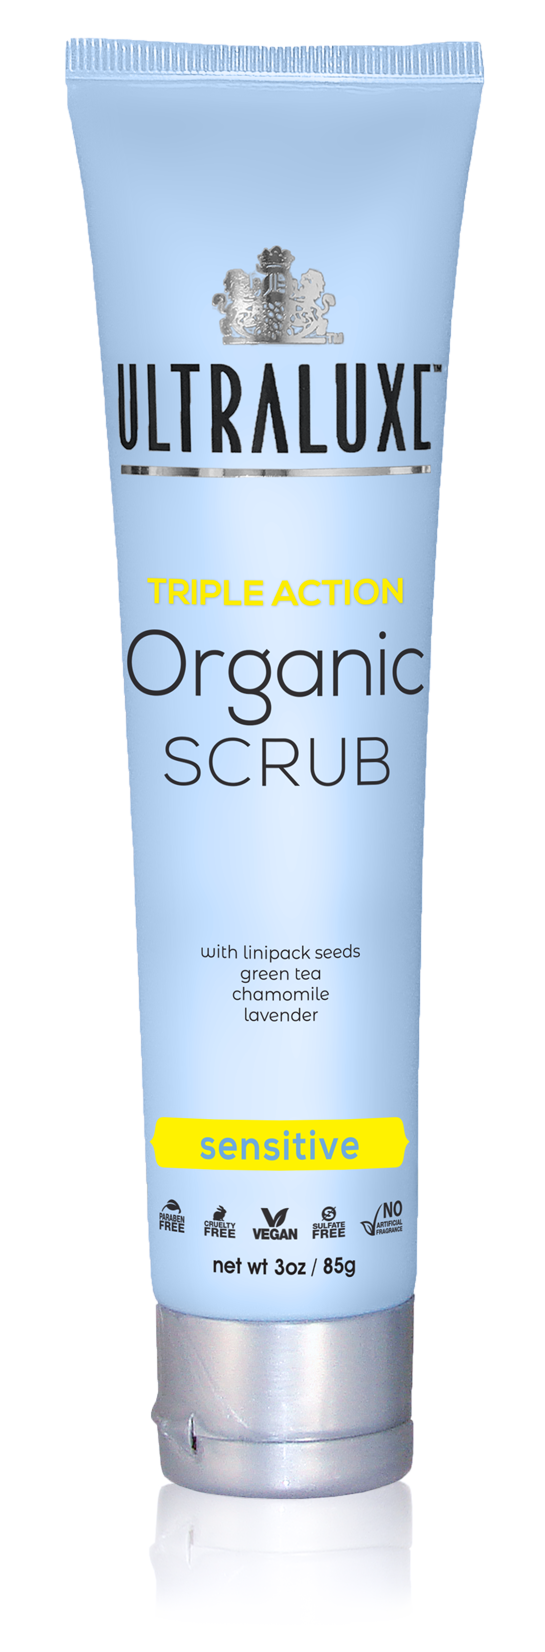 Triple Action Organic Scrub - Sensitive